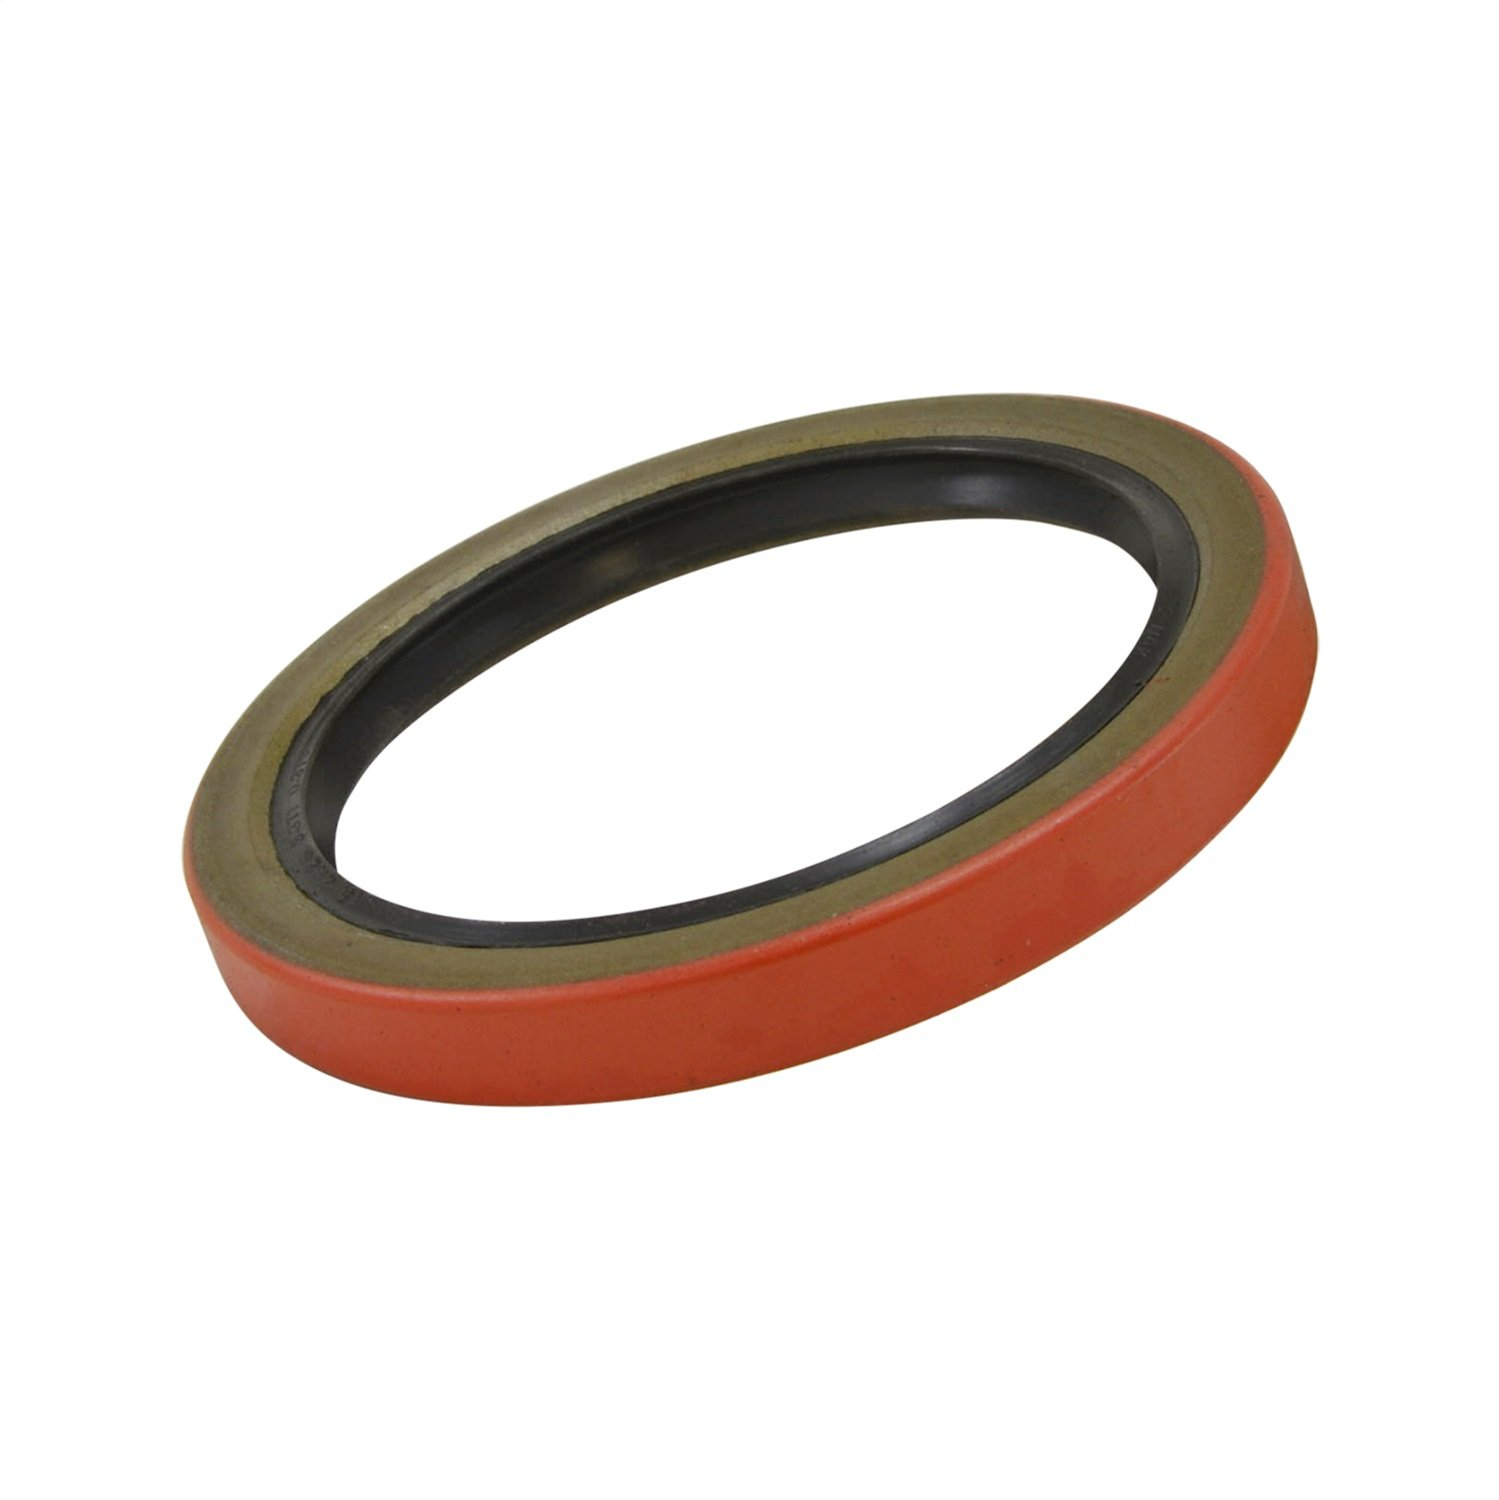 Yukon Full-Time Inner Replacement Wheel Seal for Dodge 4WD Dana 44 Front Differential YMS413248